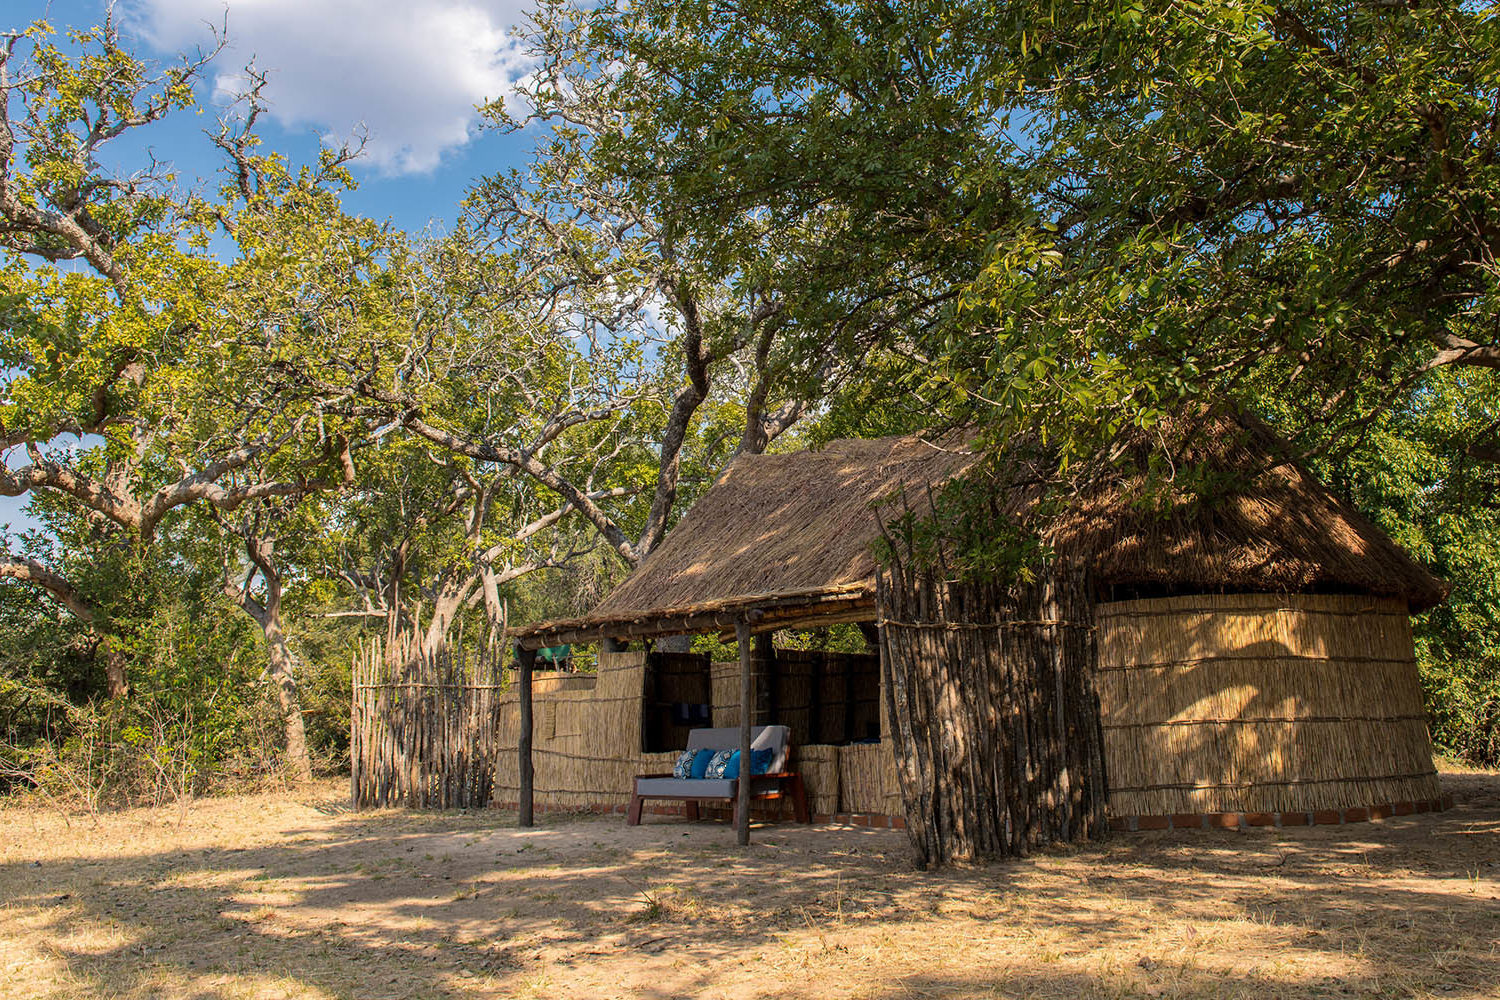 takwela-camp-north-luangwa-national-park-lodges-zambia-in-style-intimate-stay-chalet-exterior